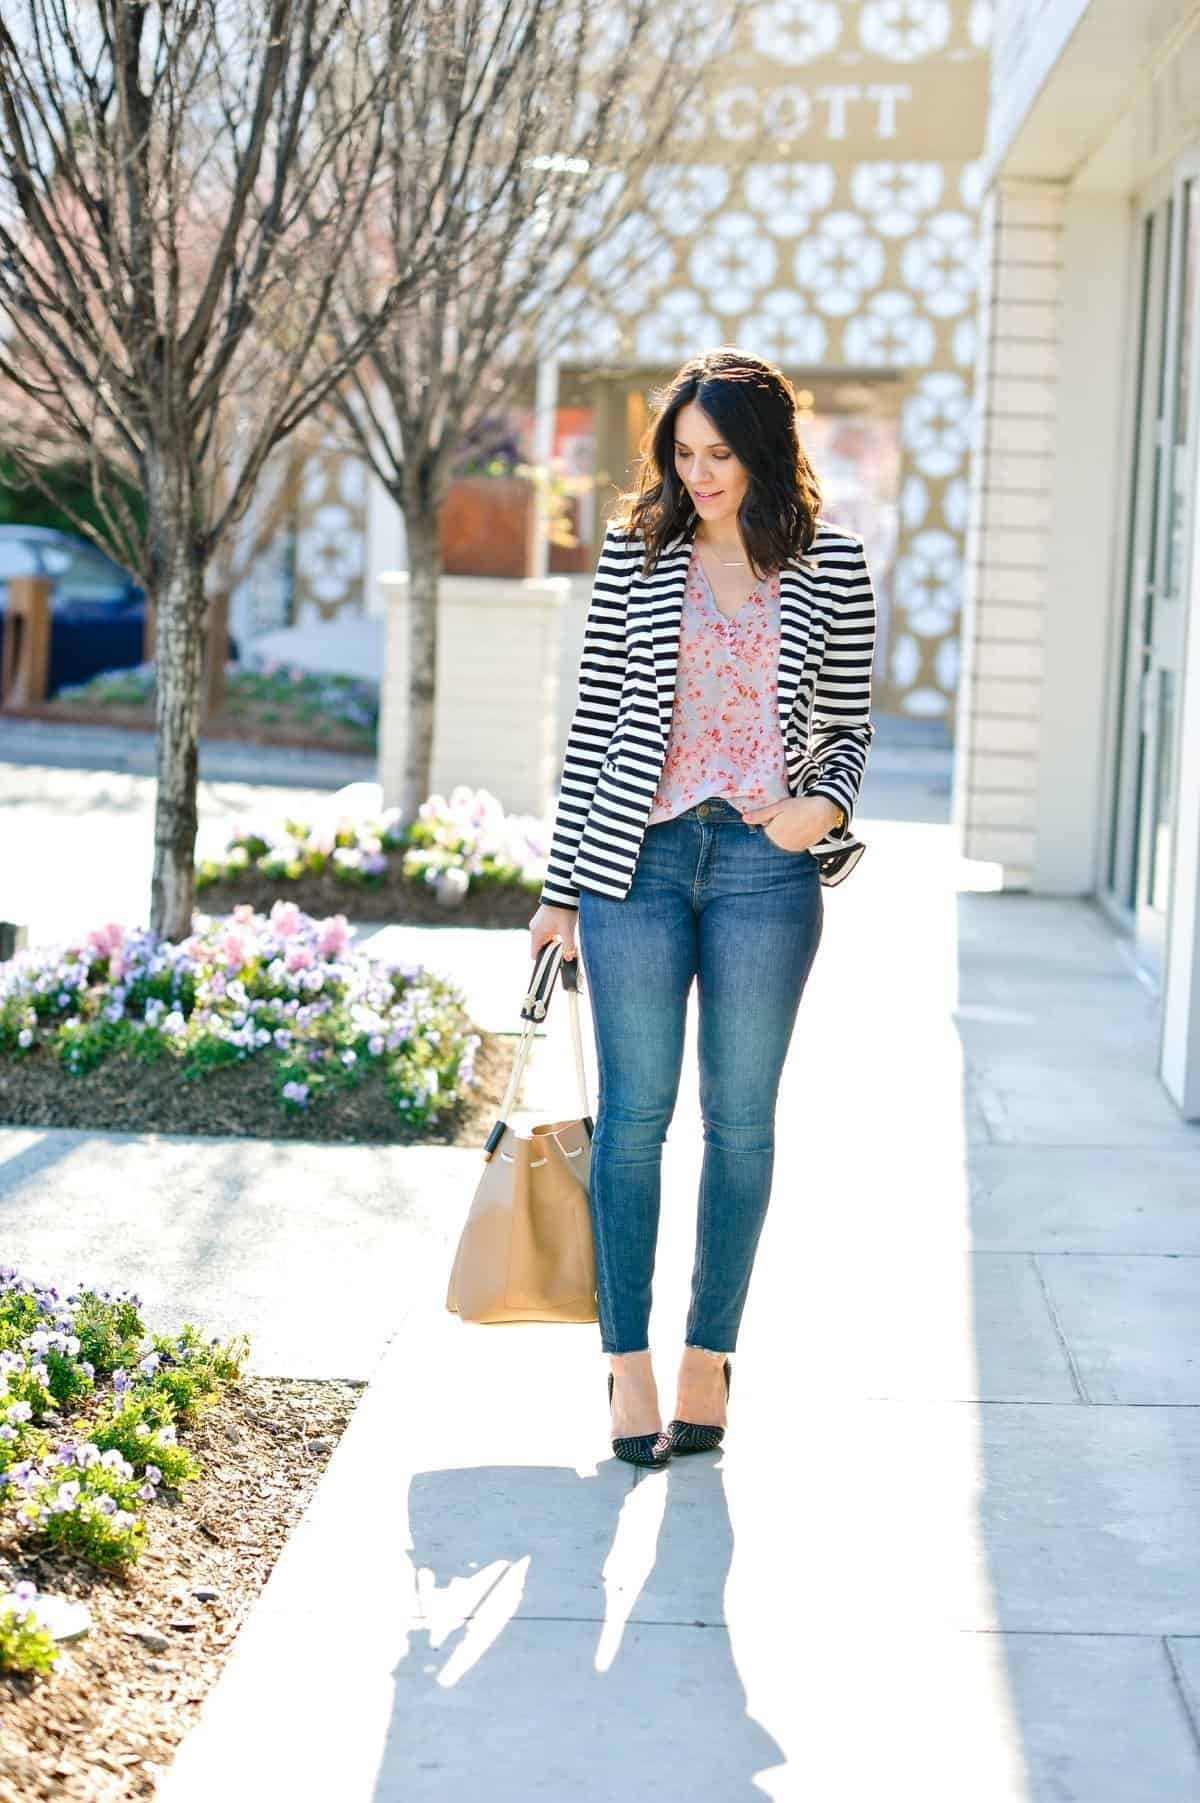 How To Style A Blazer for Summer